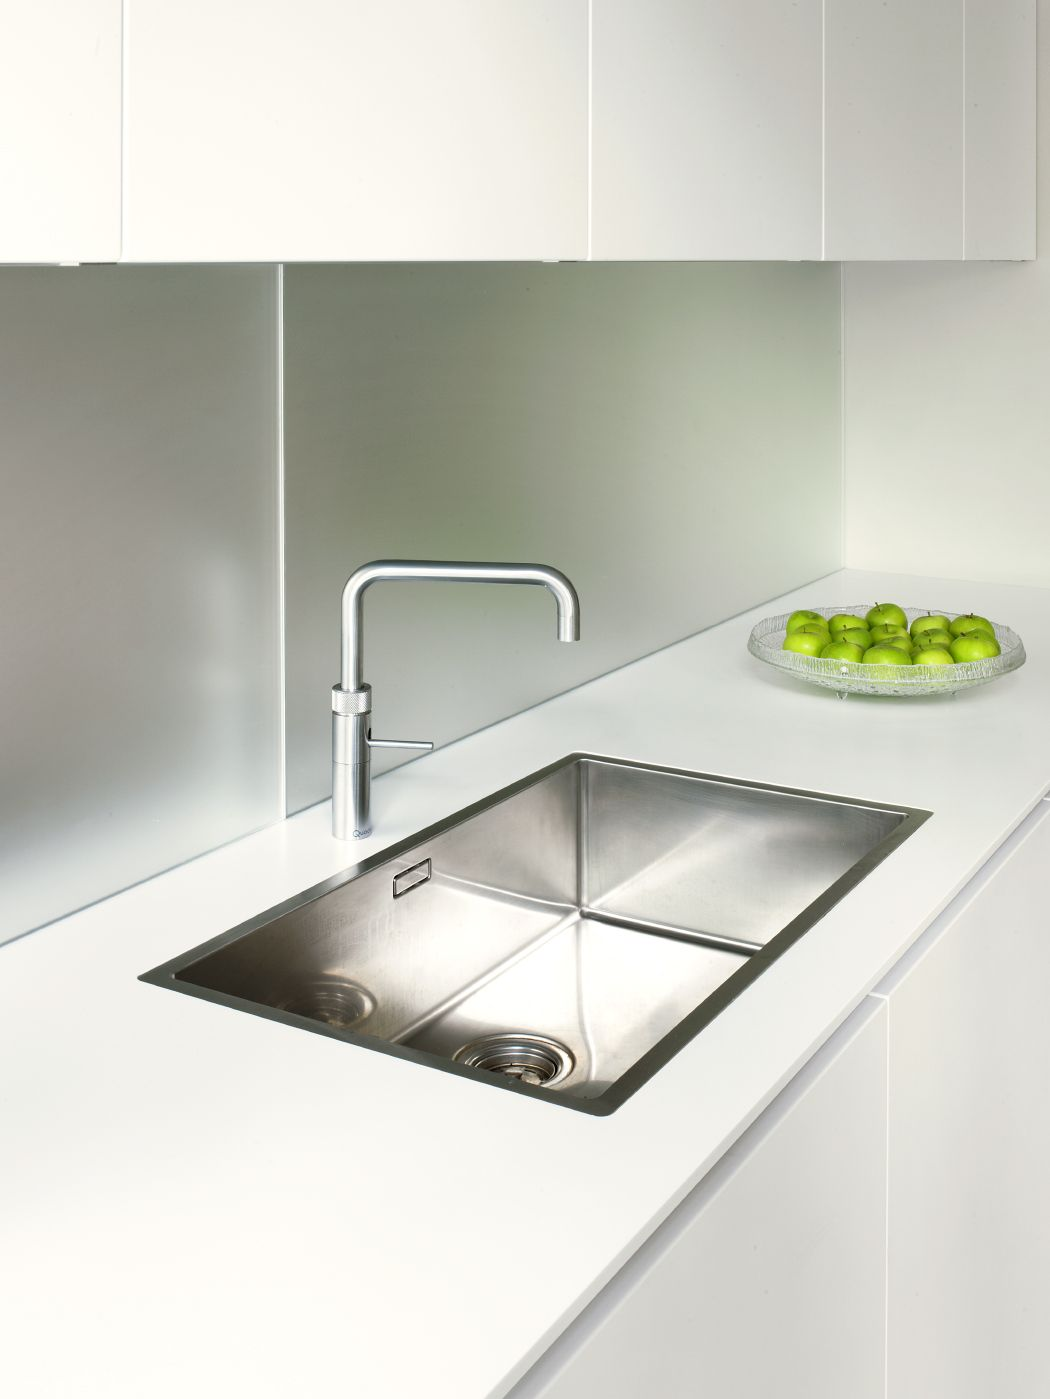 Systemat Range   Polar White Lacquer Matt Cabinetry   Designer White Corian    Stainless Steel   Blanco Sink   Quooker Tap   Textured Mirror